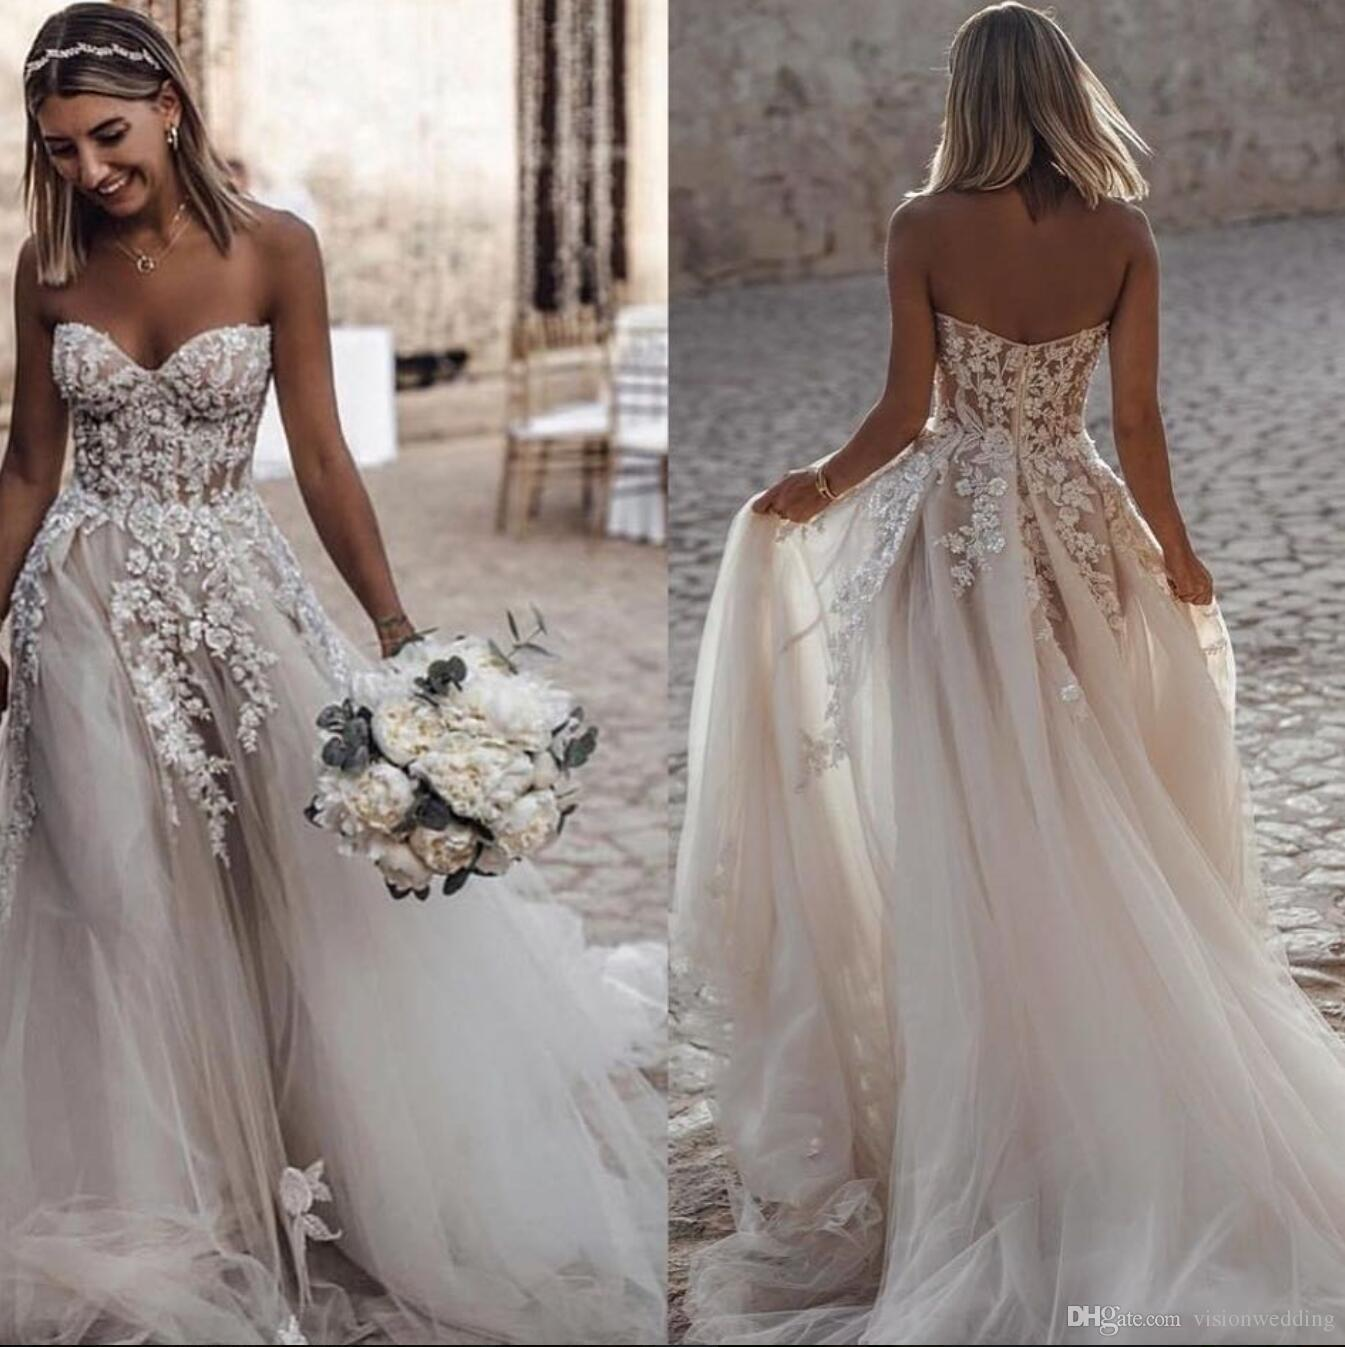 Discount Beach Wedding Dresses A Line Tulle 3D Applique